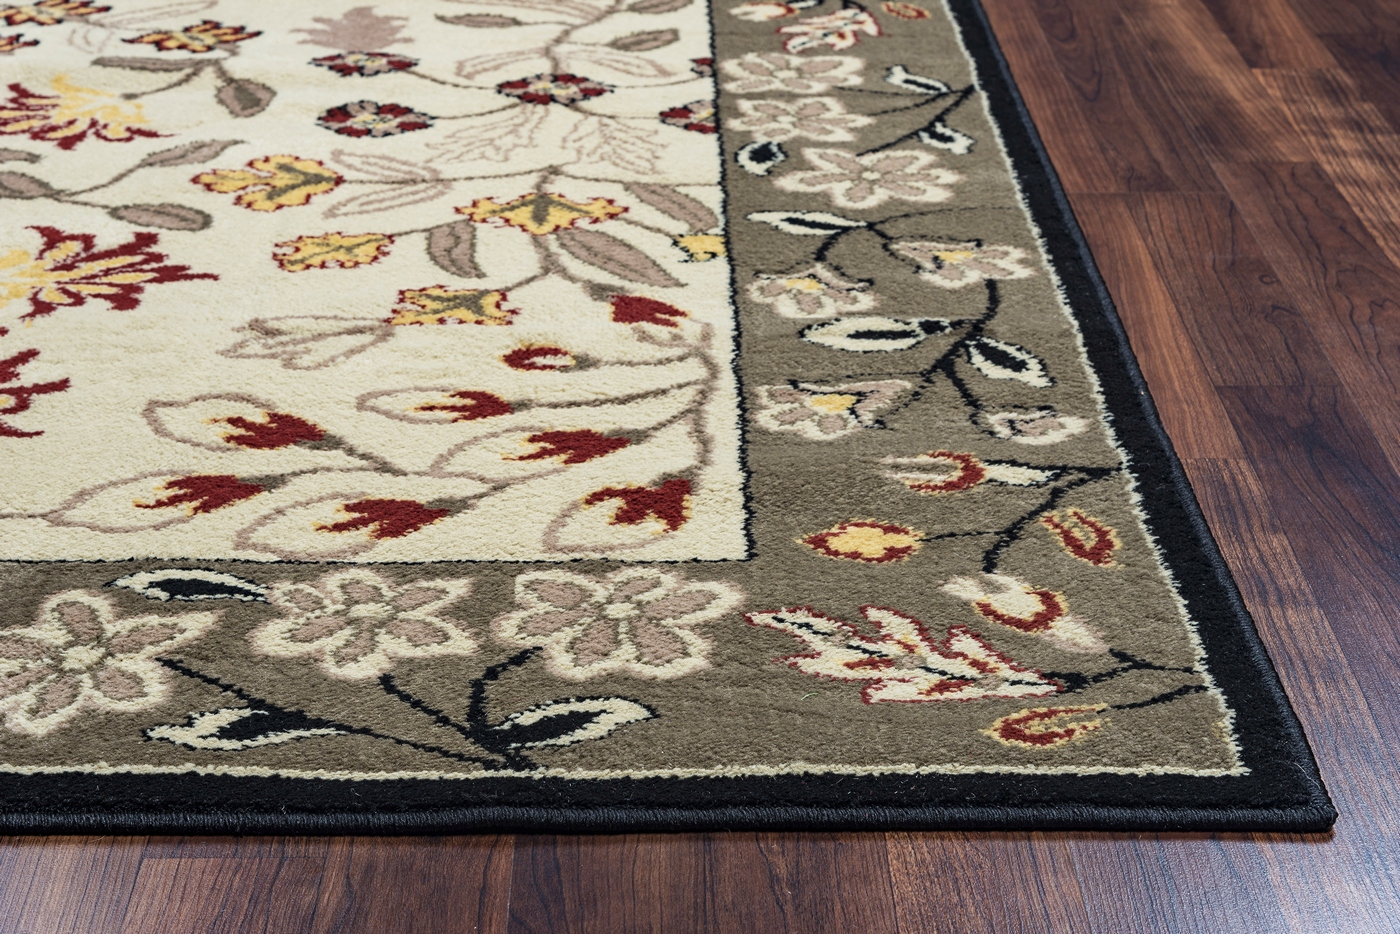 Grey Tan And Brown Area Rug: Bay Side Floral Border Pattern Area Rug In Beige Grey